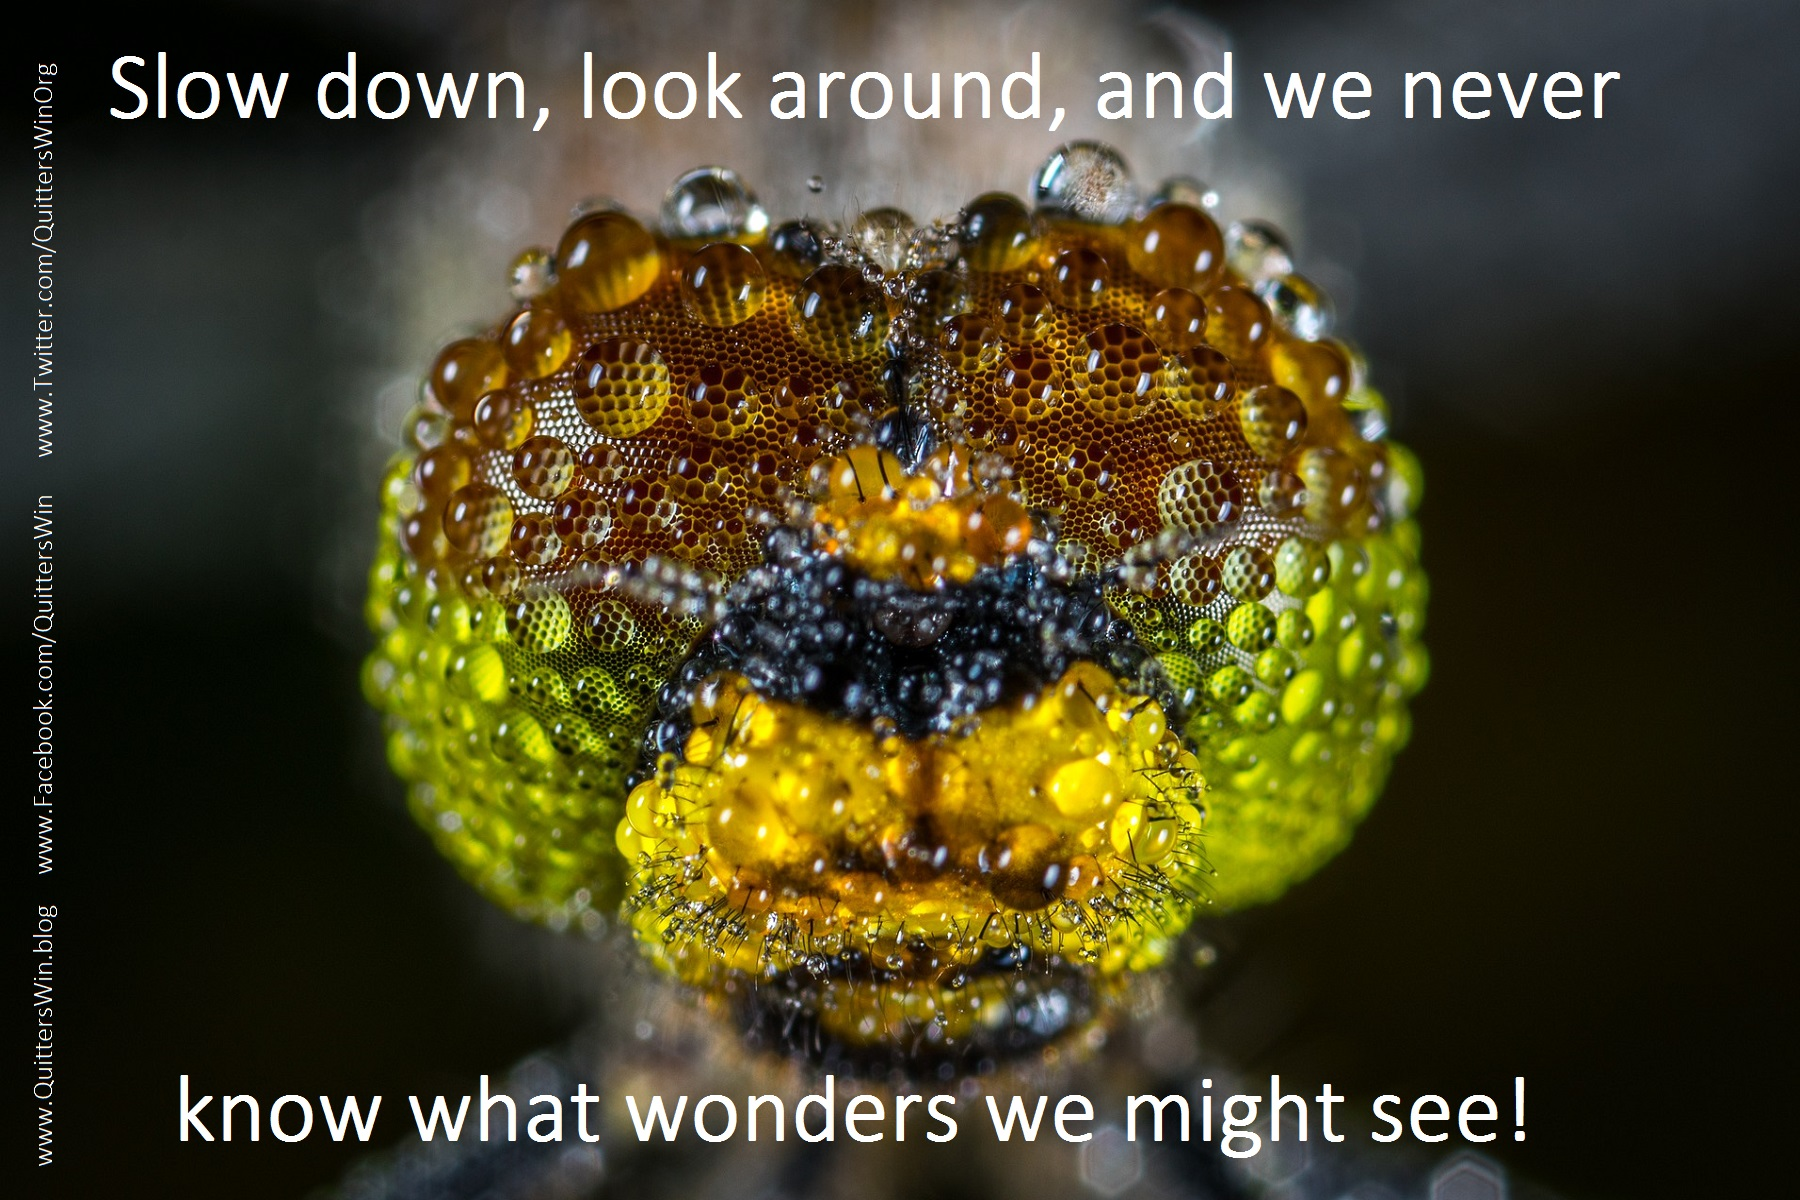 Slow down, look around, and we never know what wonder we might see!